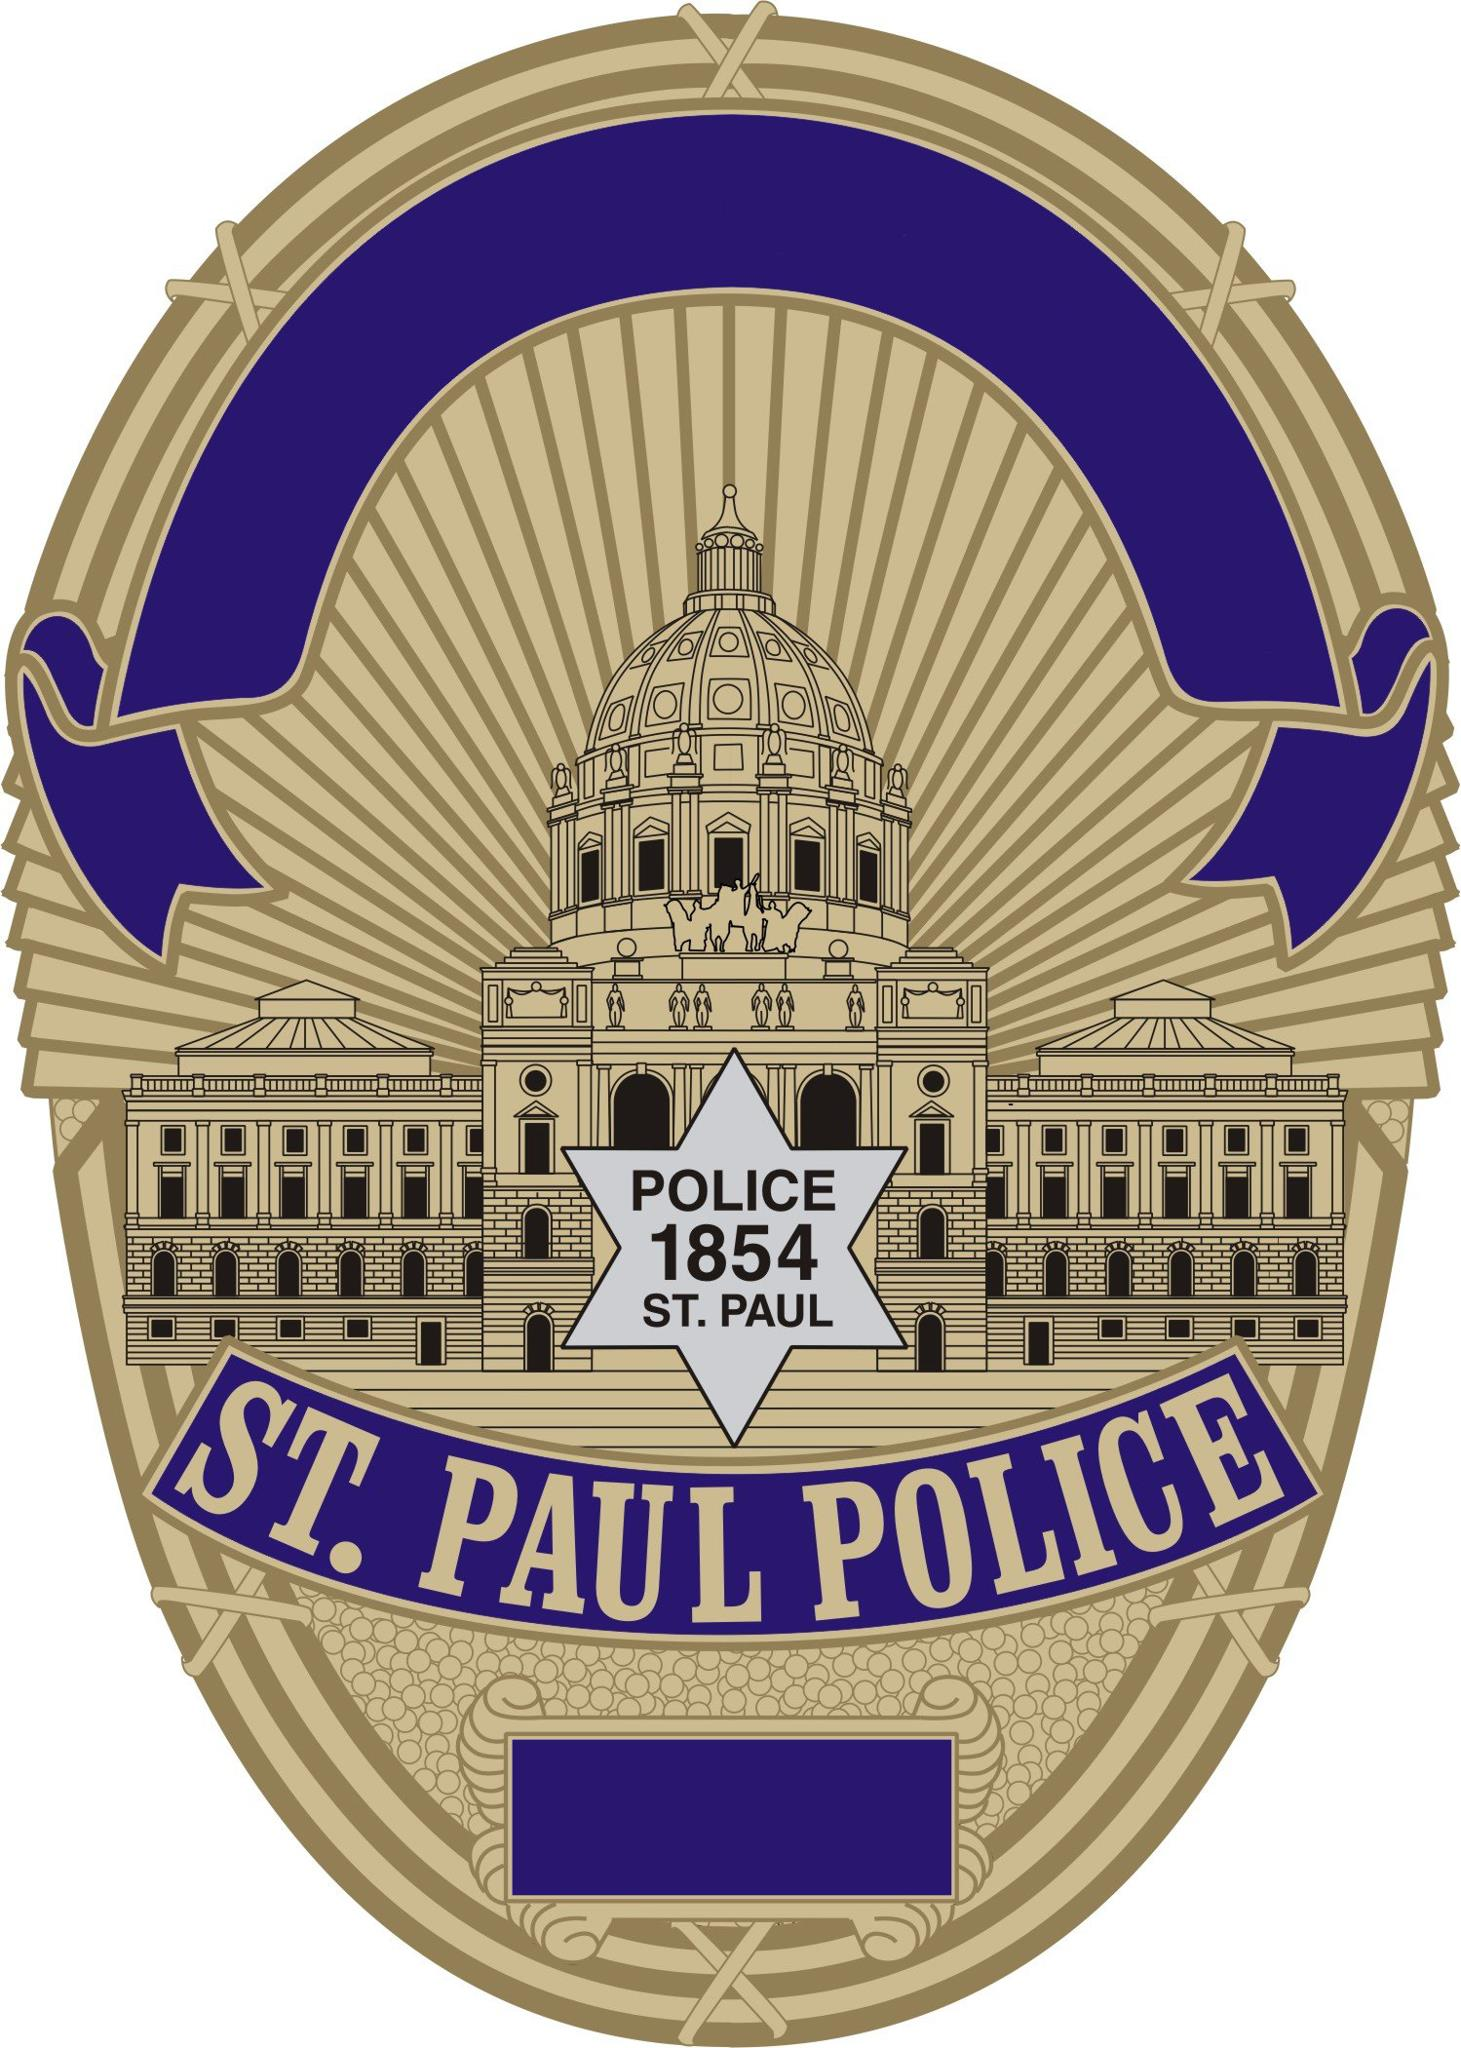 St. Paul Police